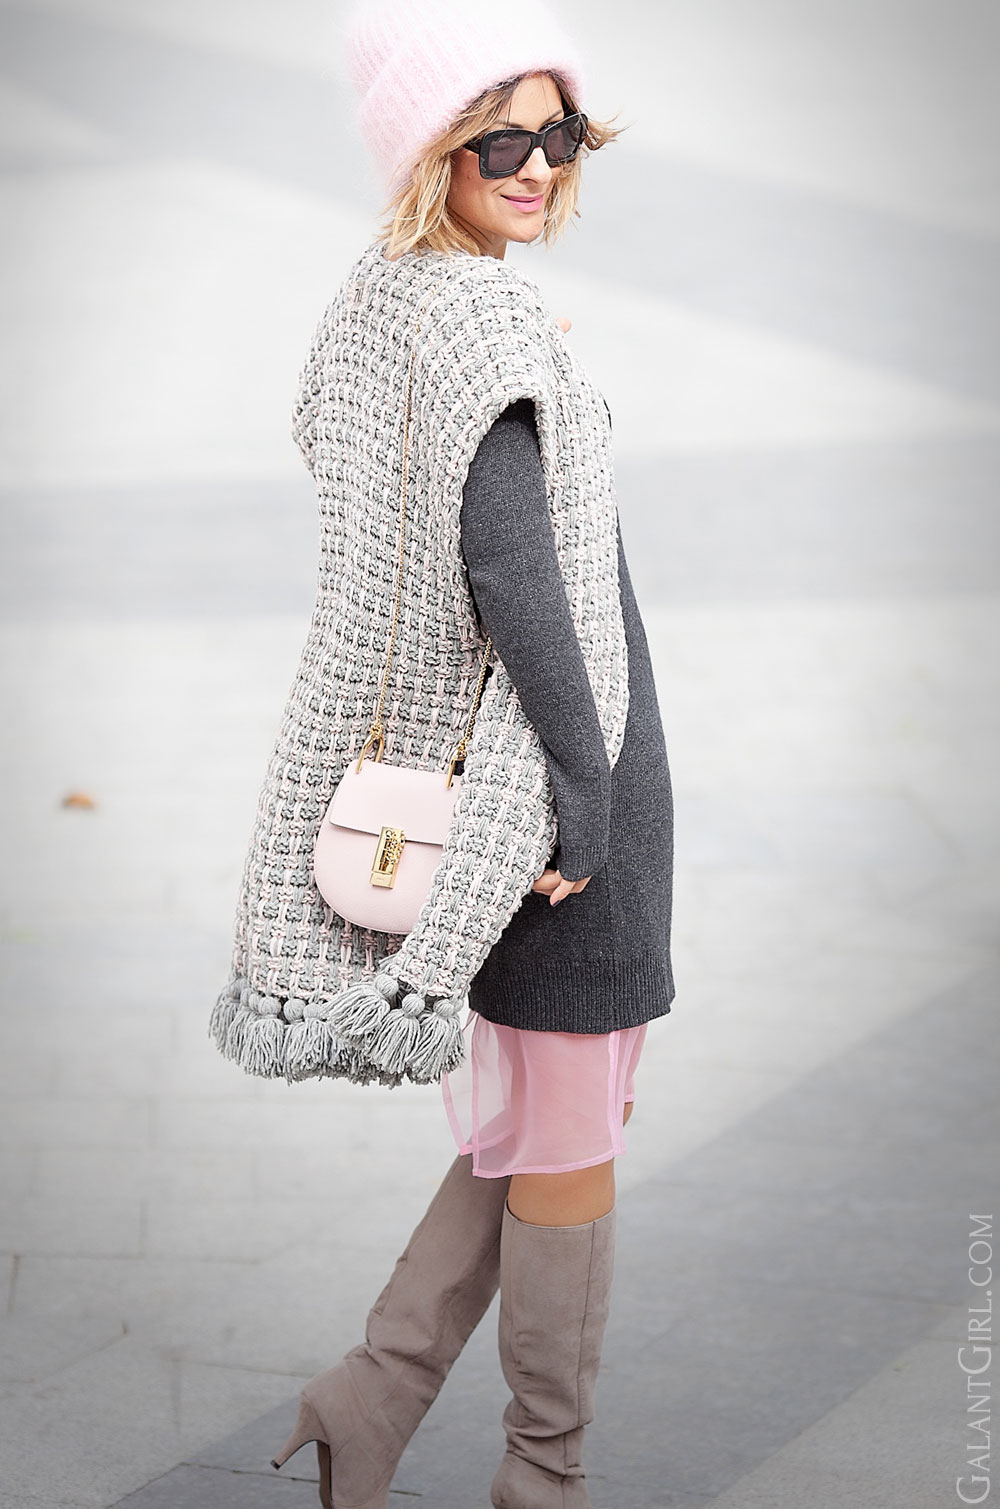 chlow+drew+in+cement-pink+outfit-with+knit+poncho